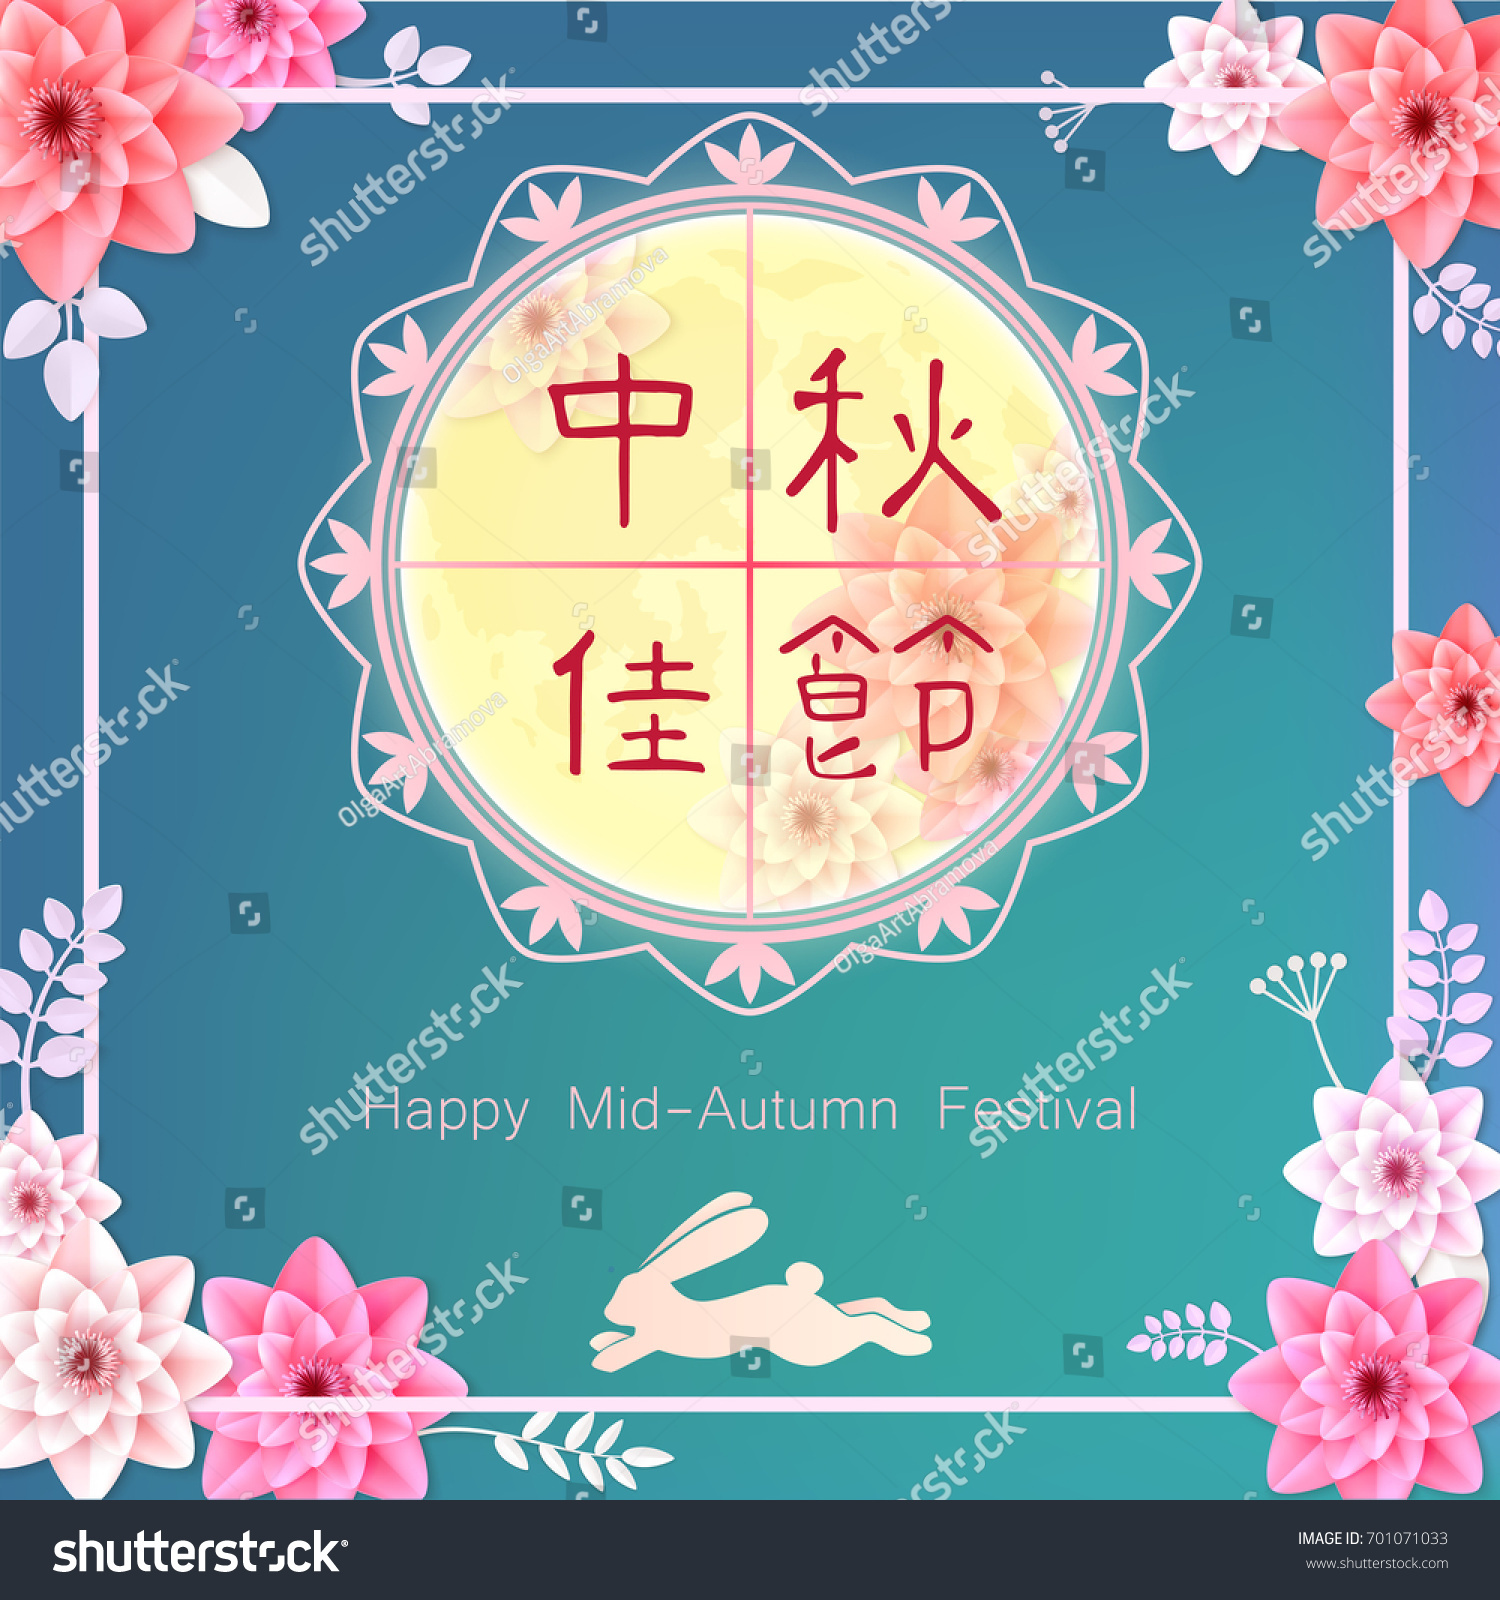 Chinese mid autumn festival greeting card stock vector 701071033 chinese mid autumn festival greeting card with moon rabbit and flowers chinese hieroglyphs are kristyandbryce Choice Image